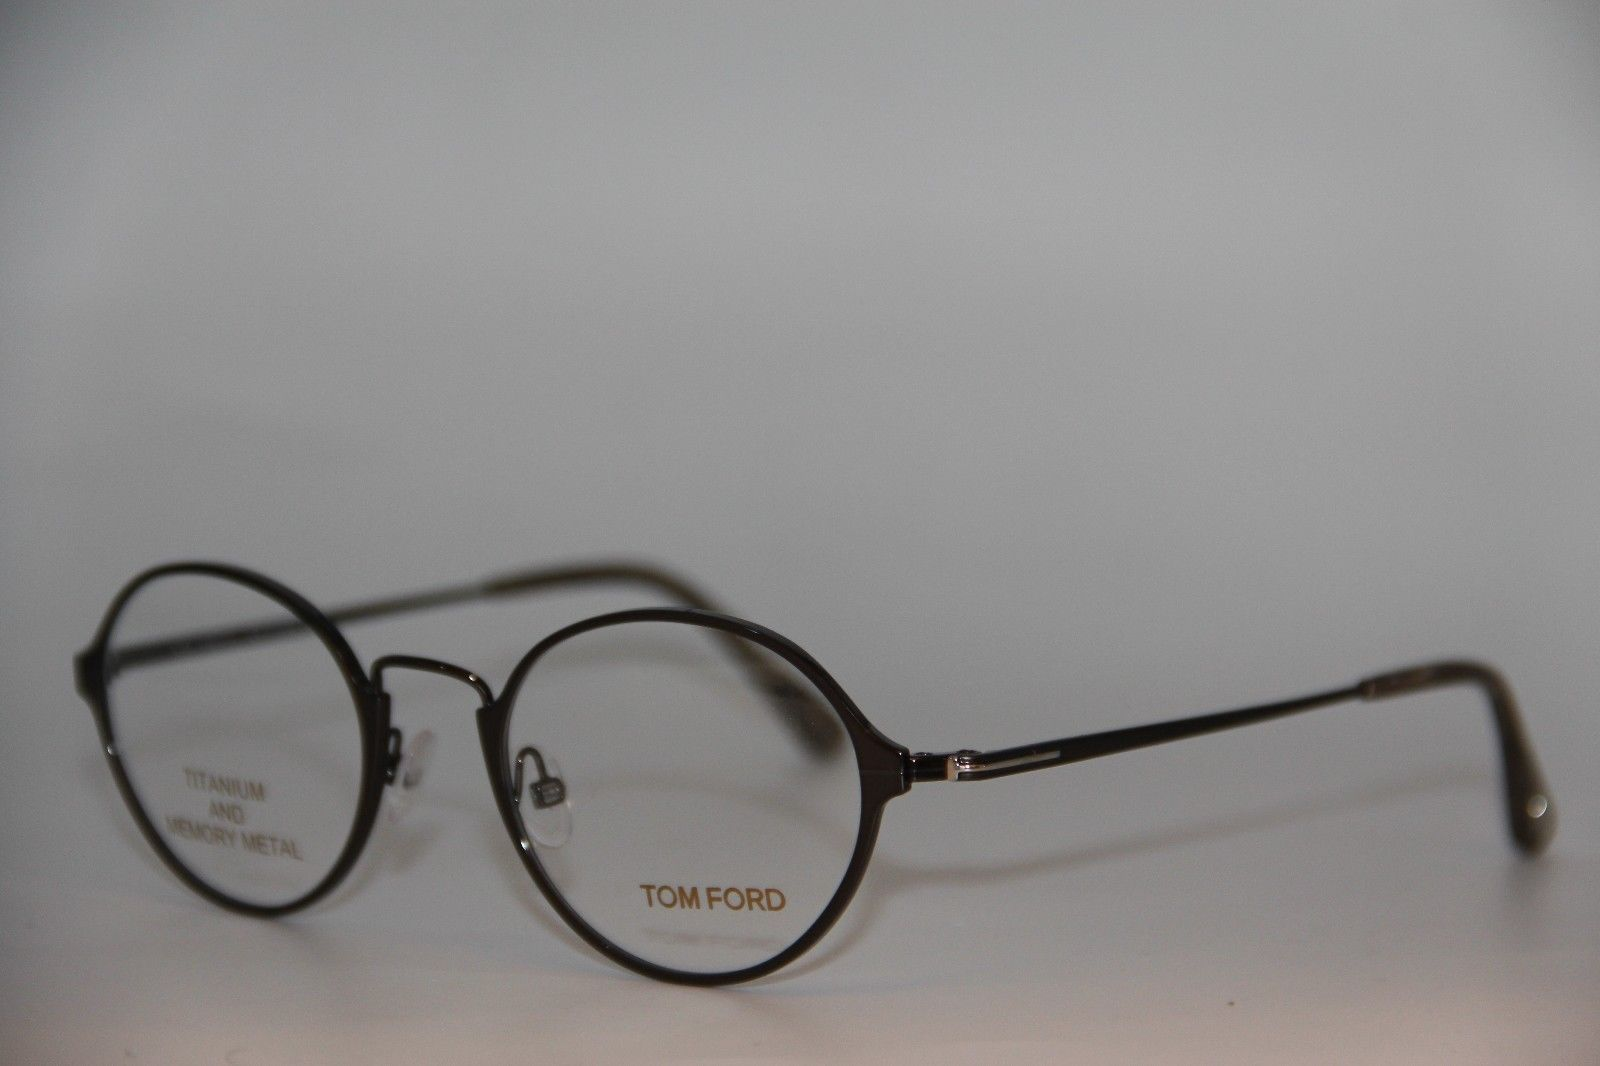 7c5f5943dbbb2 New Tom Ford Ft 5350 048 Gunmetal Eyeglasses and 33 similar items. 57